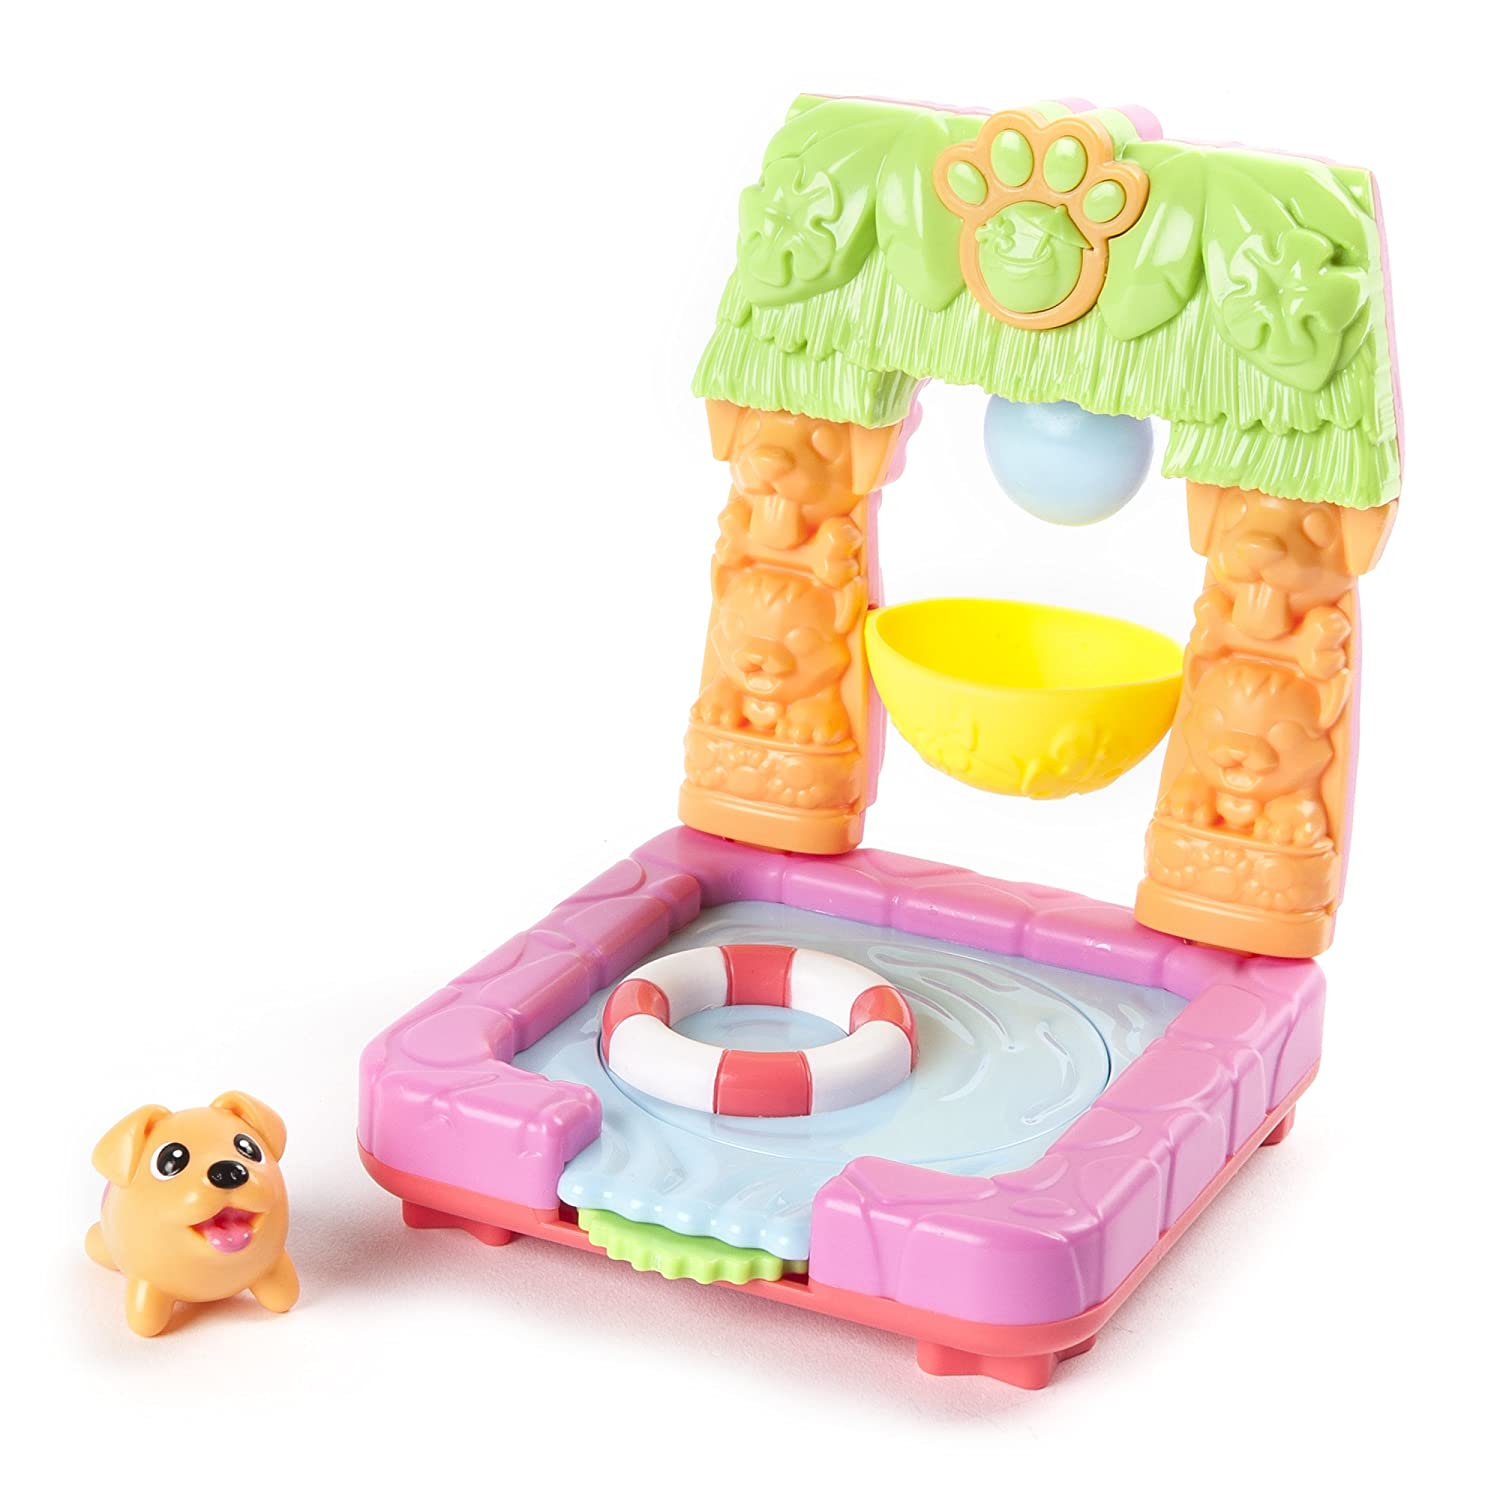 2-in 1 Transformable Flip N/' Island Party Playset with Hawaiian Labrador Collectible Figure Spin Master 20086769 Chubby Puppies and Friends